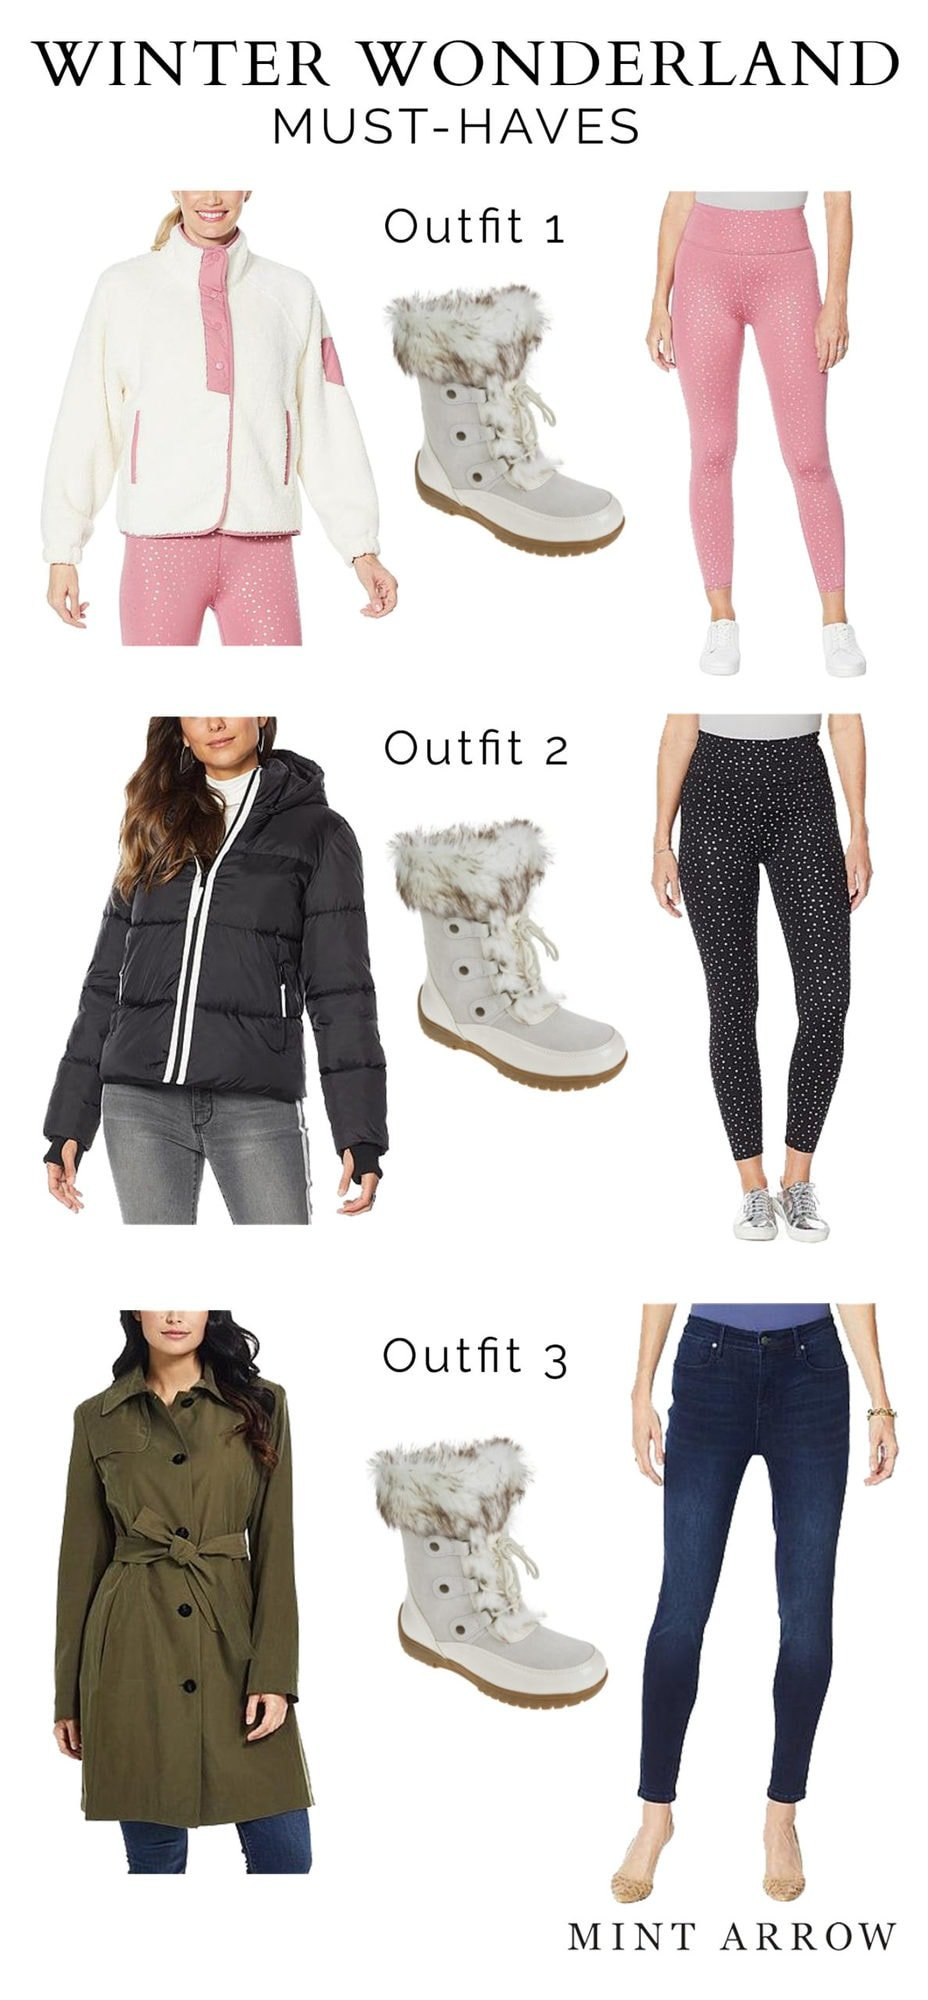 sporto winter boots outfit ideas HSN